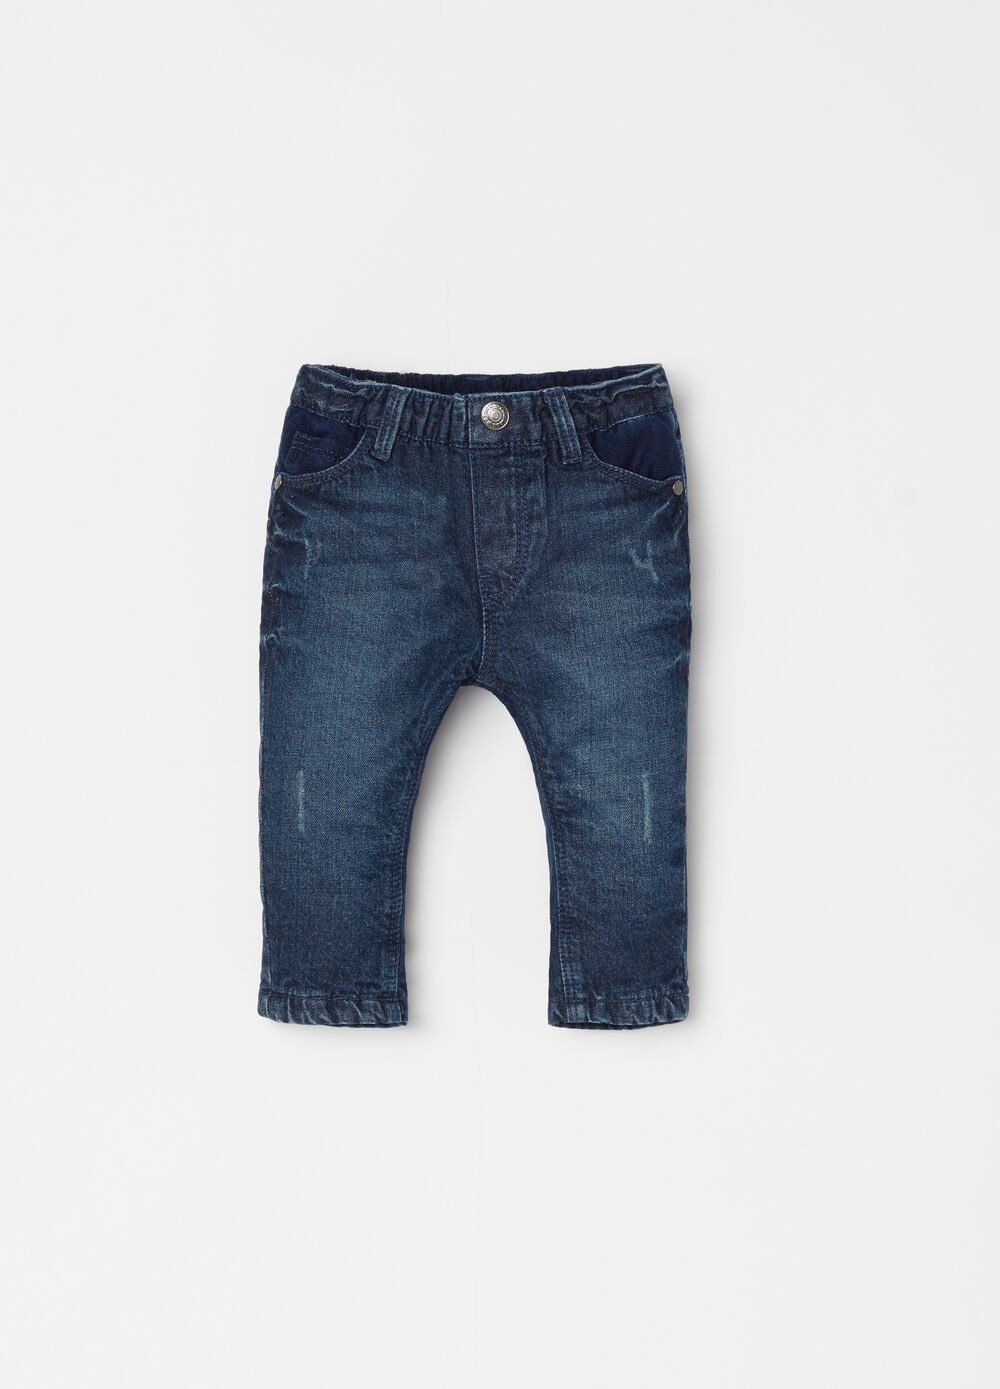 Washed jeans with five pockets